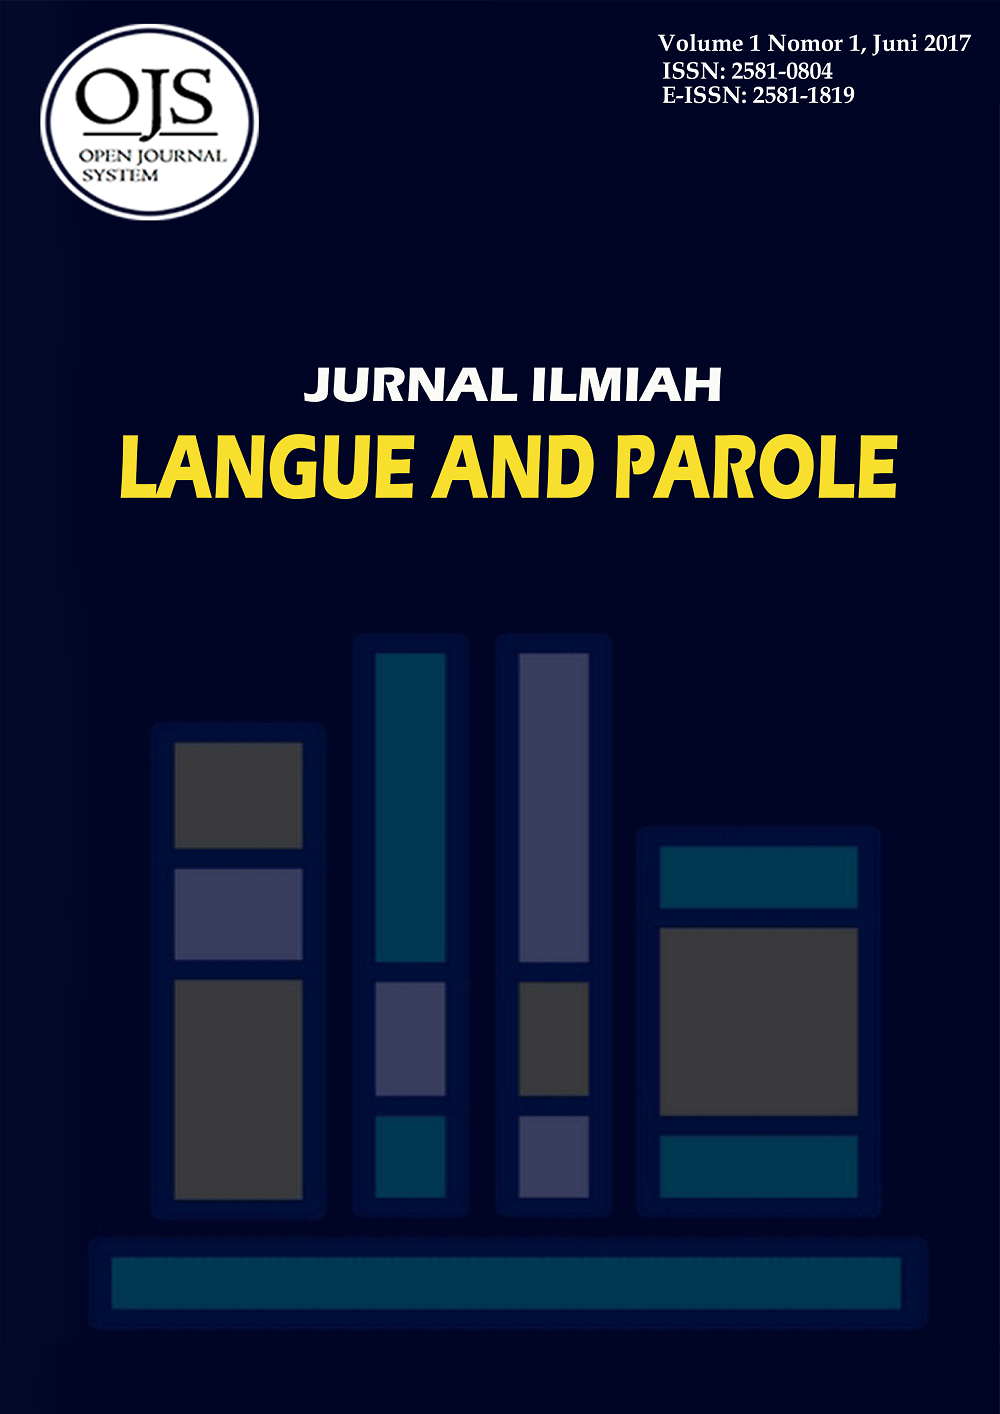 Jurnal Ilmiah Langue and Parole #ojssastraunes